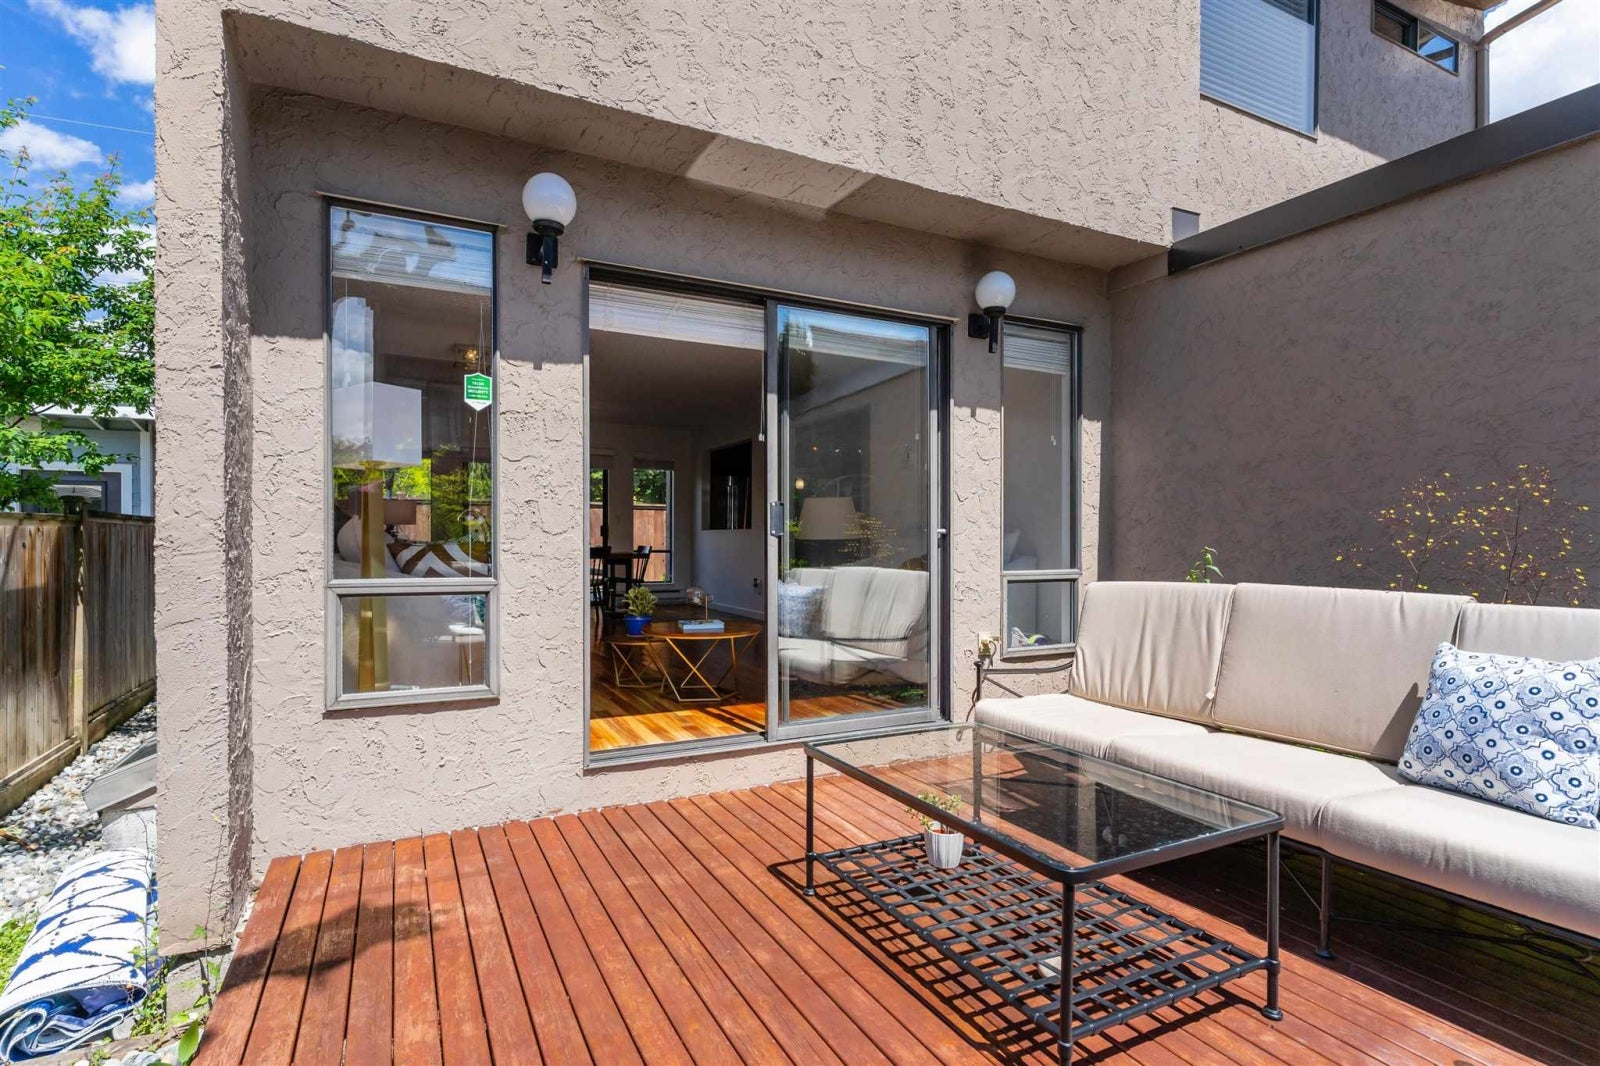 4 226 E 10TH STREET - Central Lonsdale Townhouse for sale, 3 Bedrooms (R2596161) #9